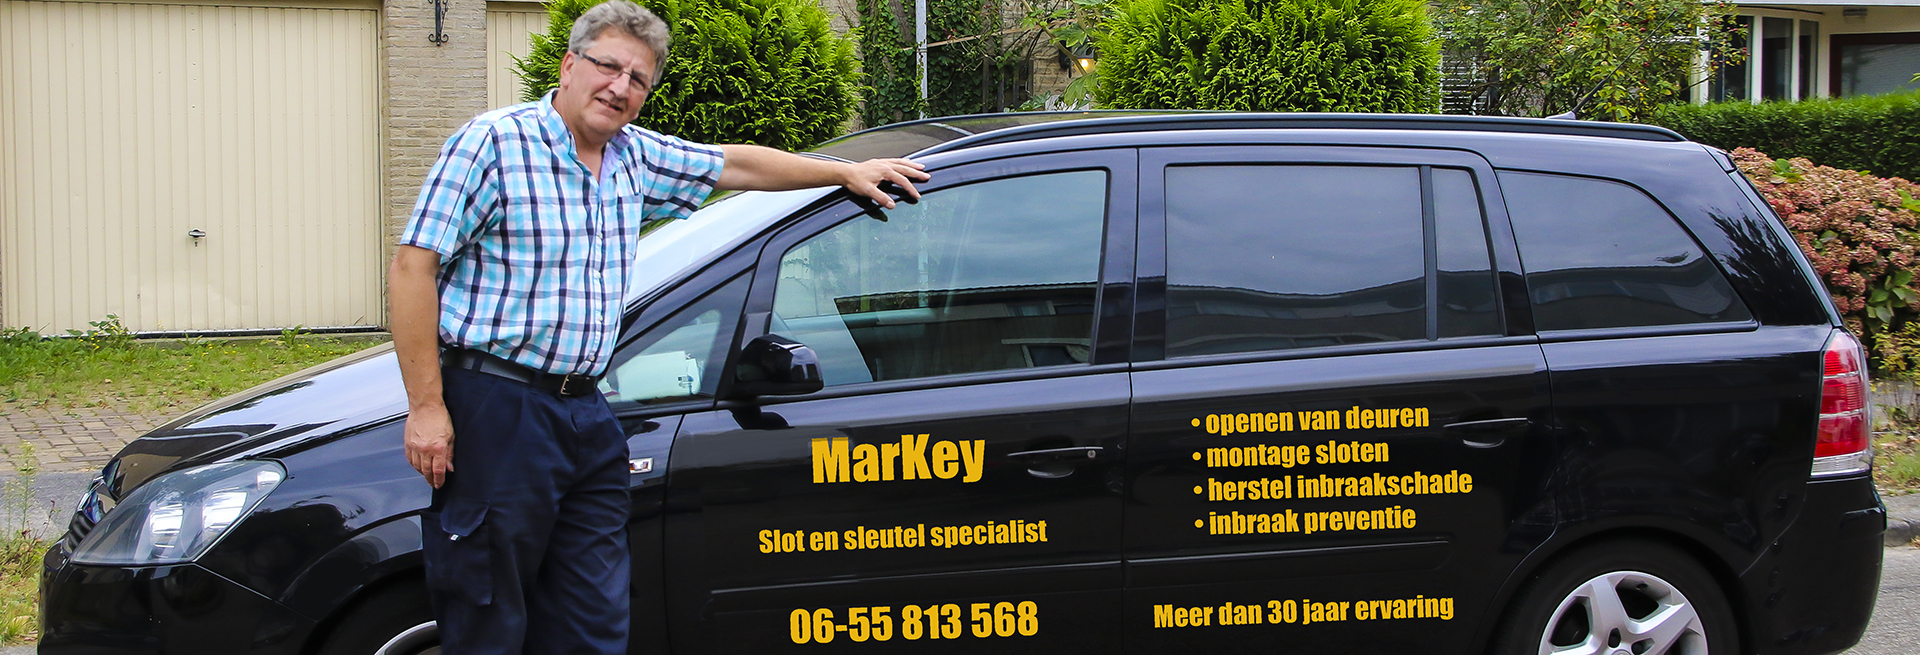 markey-slider-homepage